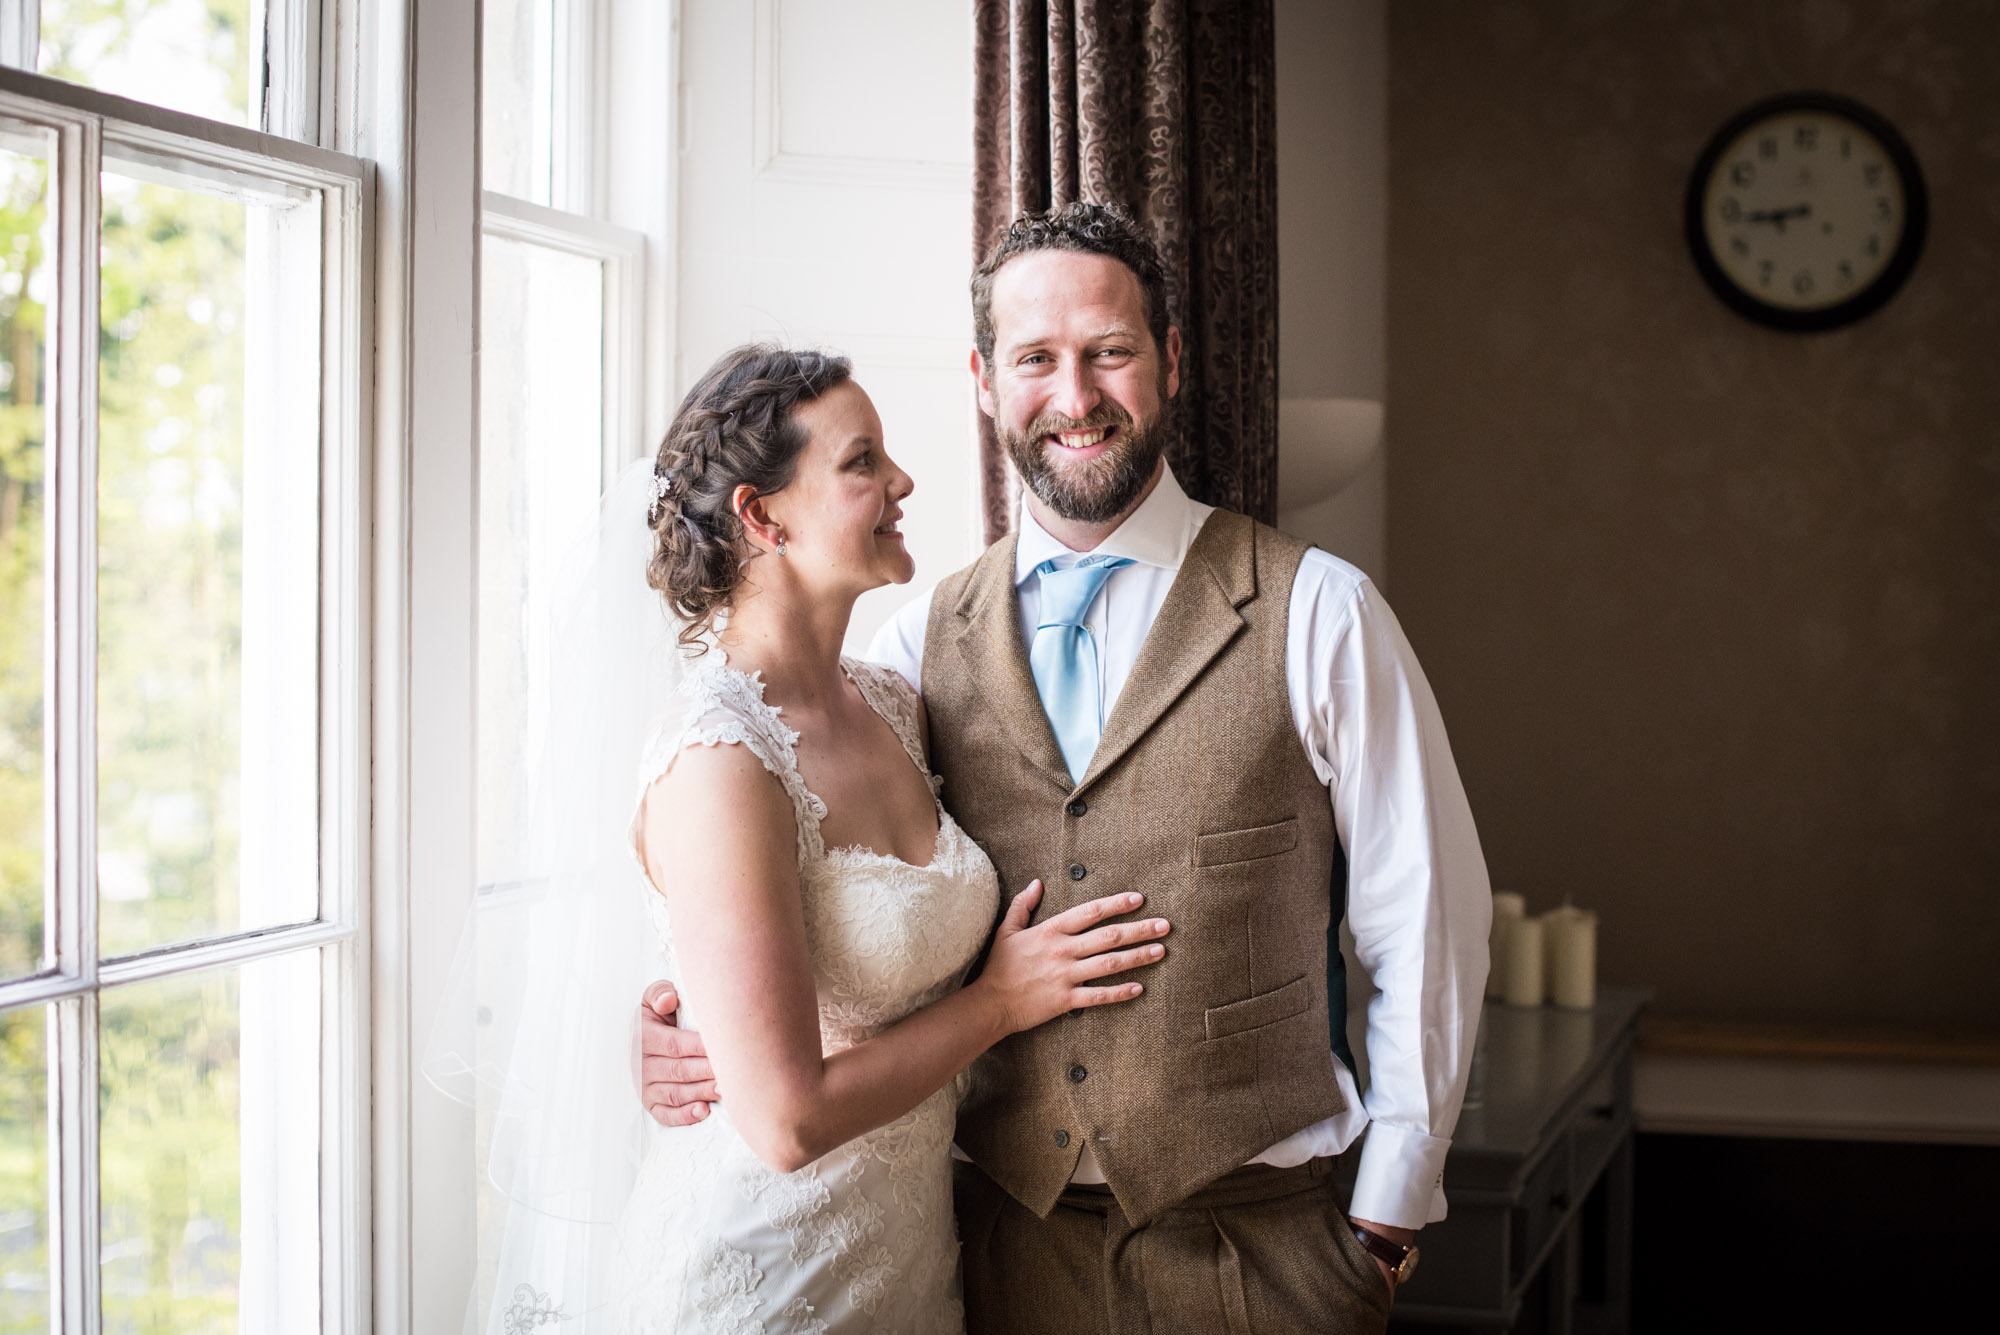 Cirencester Wedding – Fran & Will